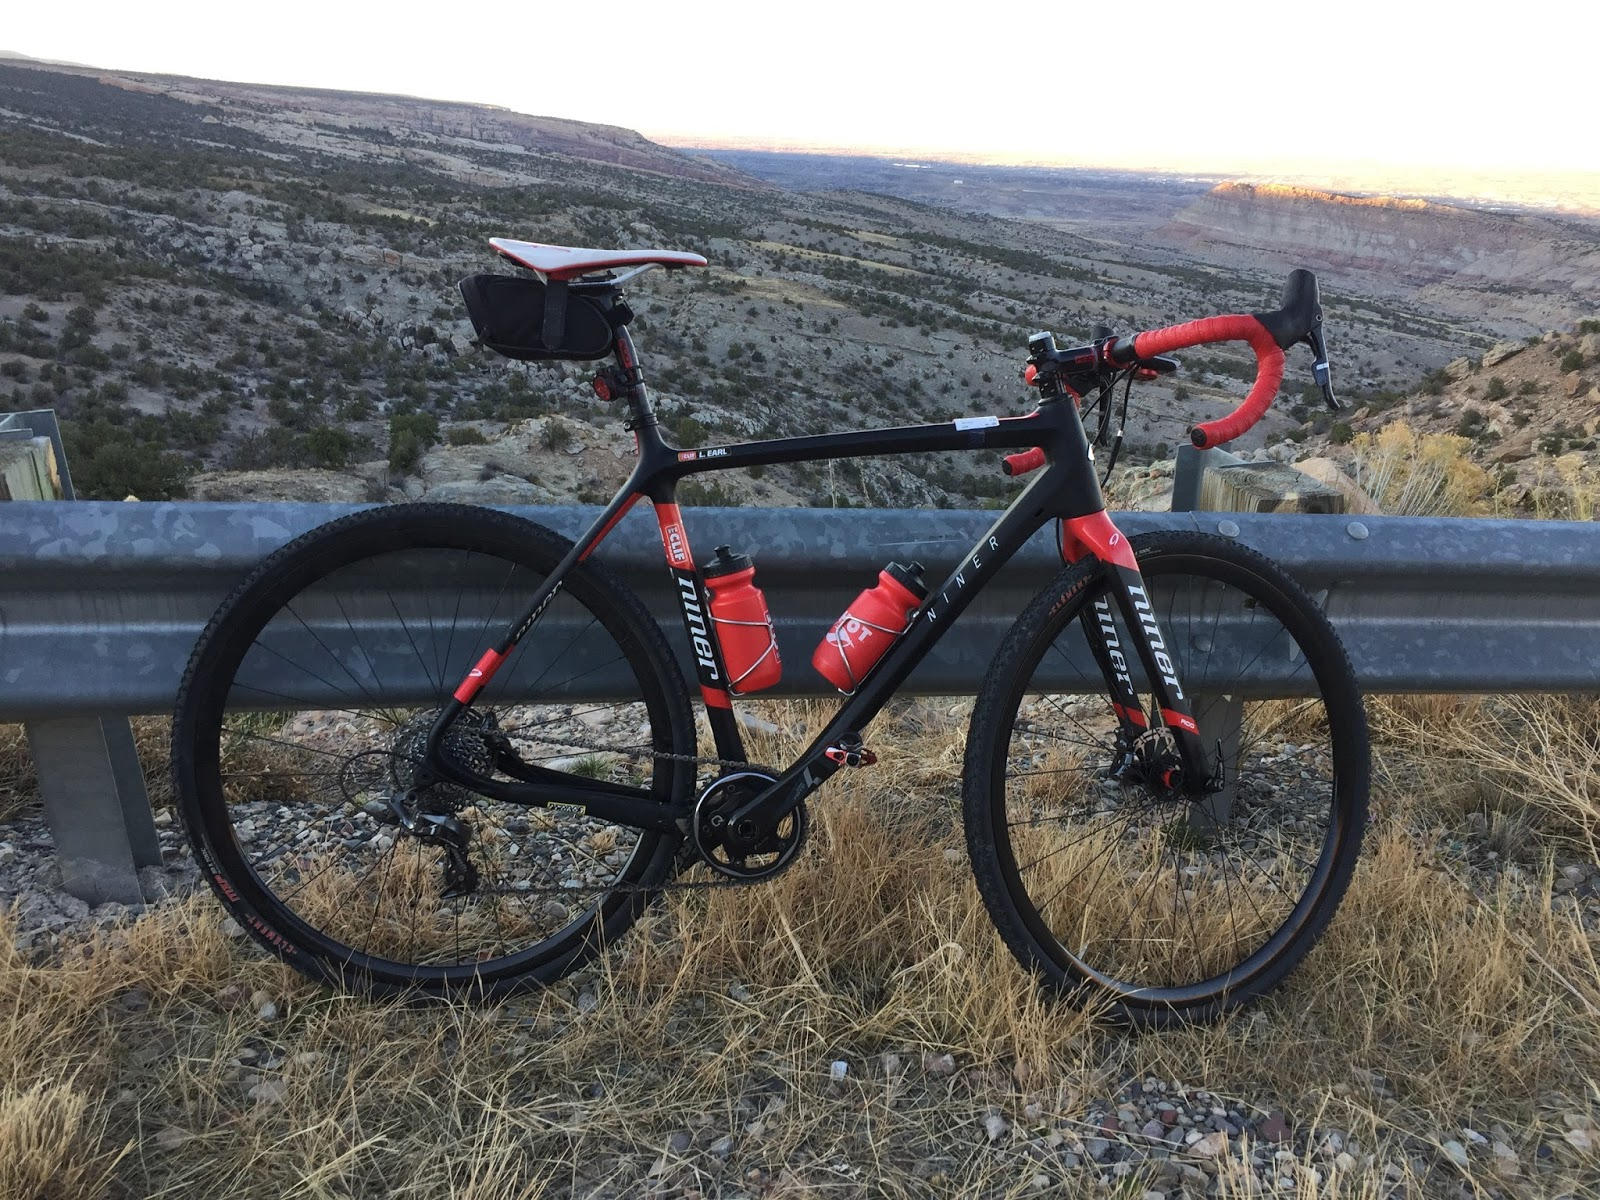 65a96accc319e This year the Clif Bar Squad Is sponsored by Niner and our weapon of choice  is the BSB9 RDO. One of the fastest bikes in the peloton the BSB9 offers  full ...